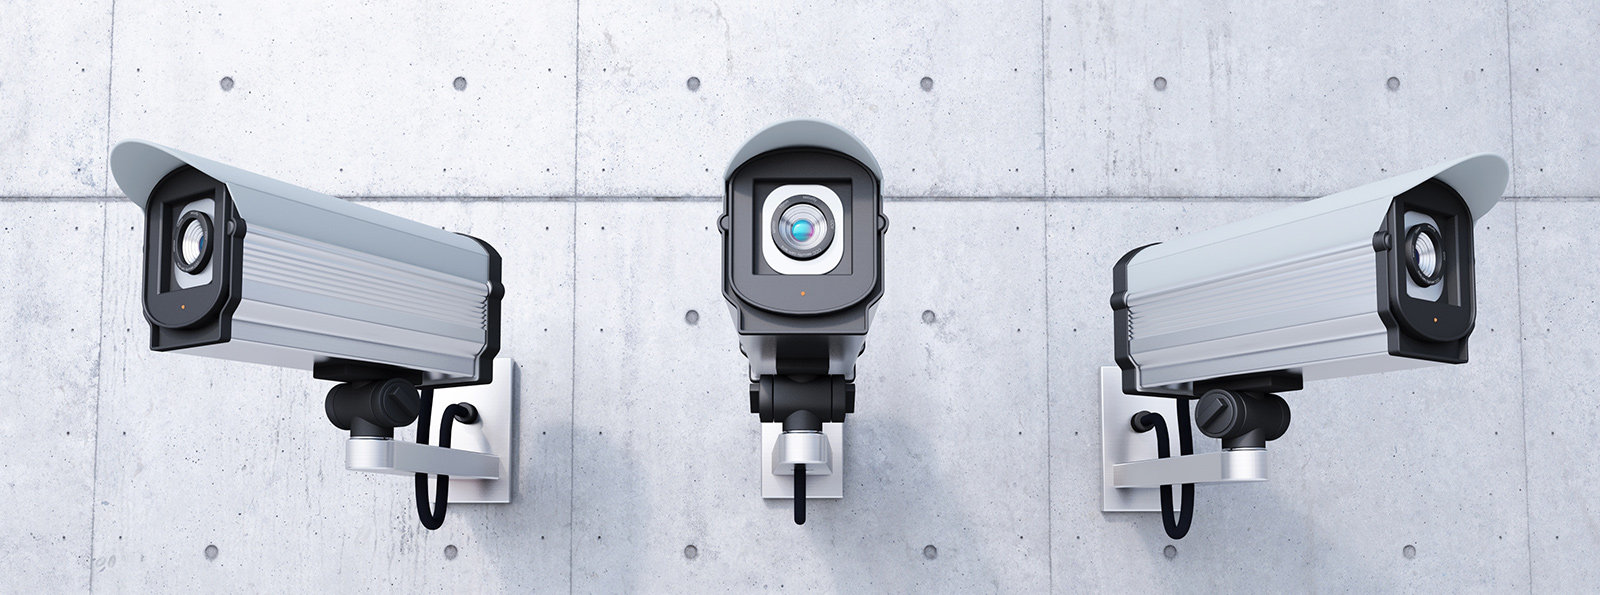 Monroe security camera systems